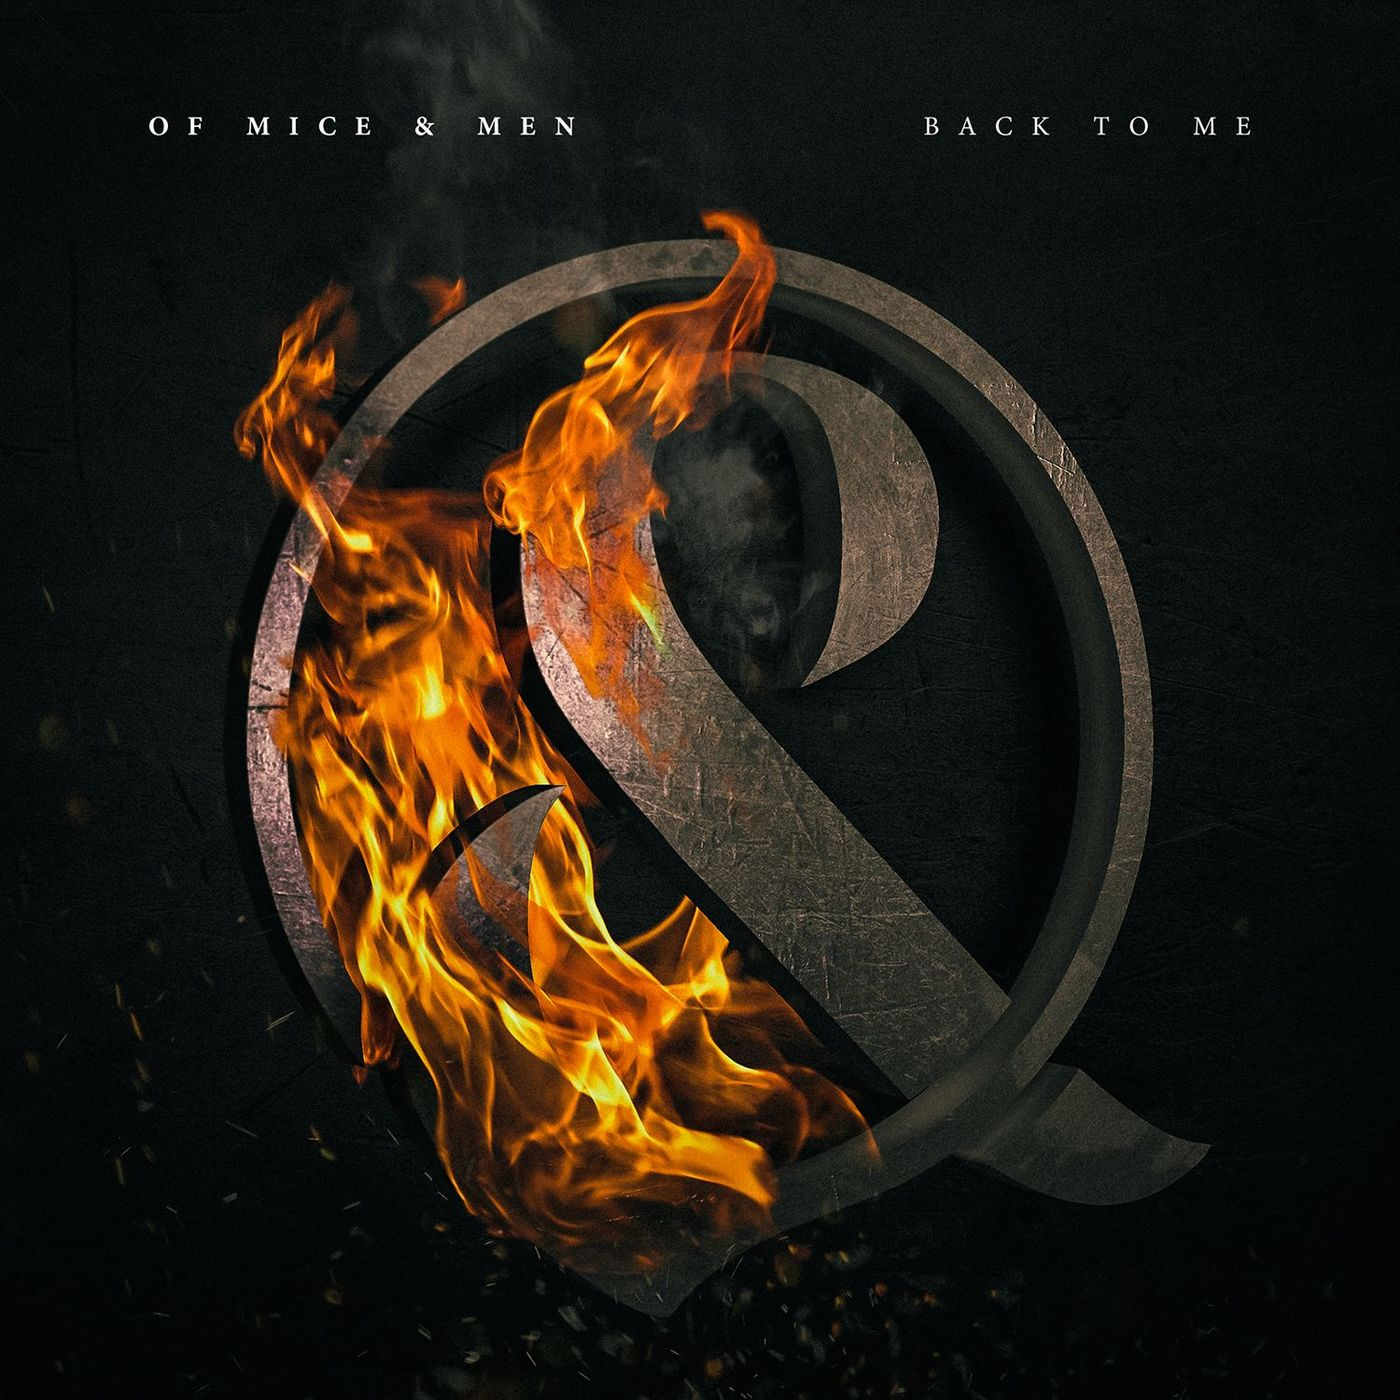 Of Mice & Men - Back To Me [single] (2017)